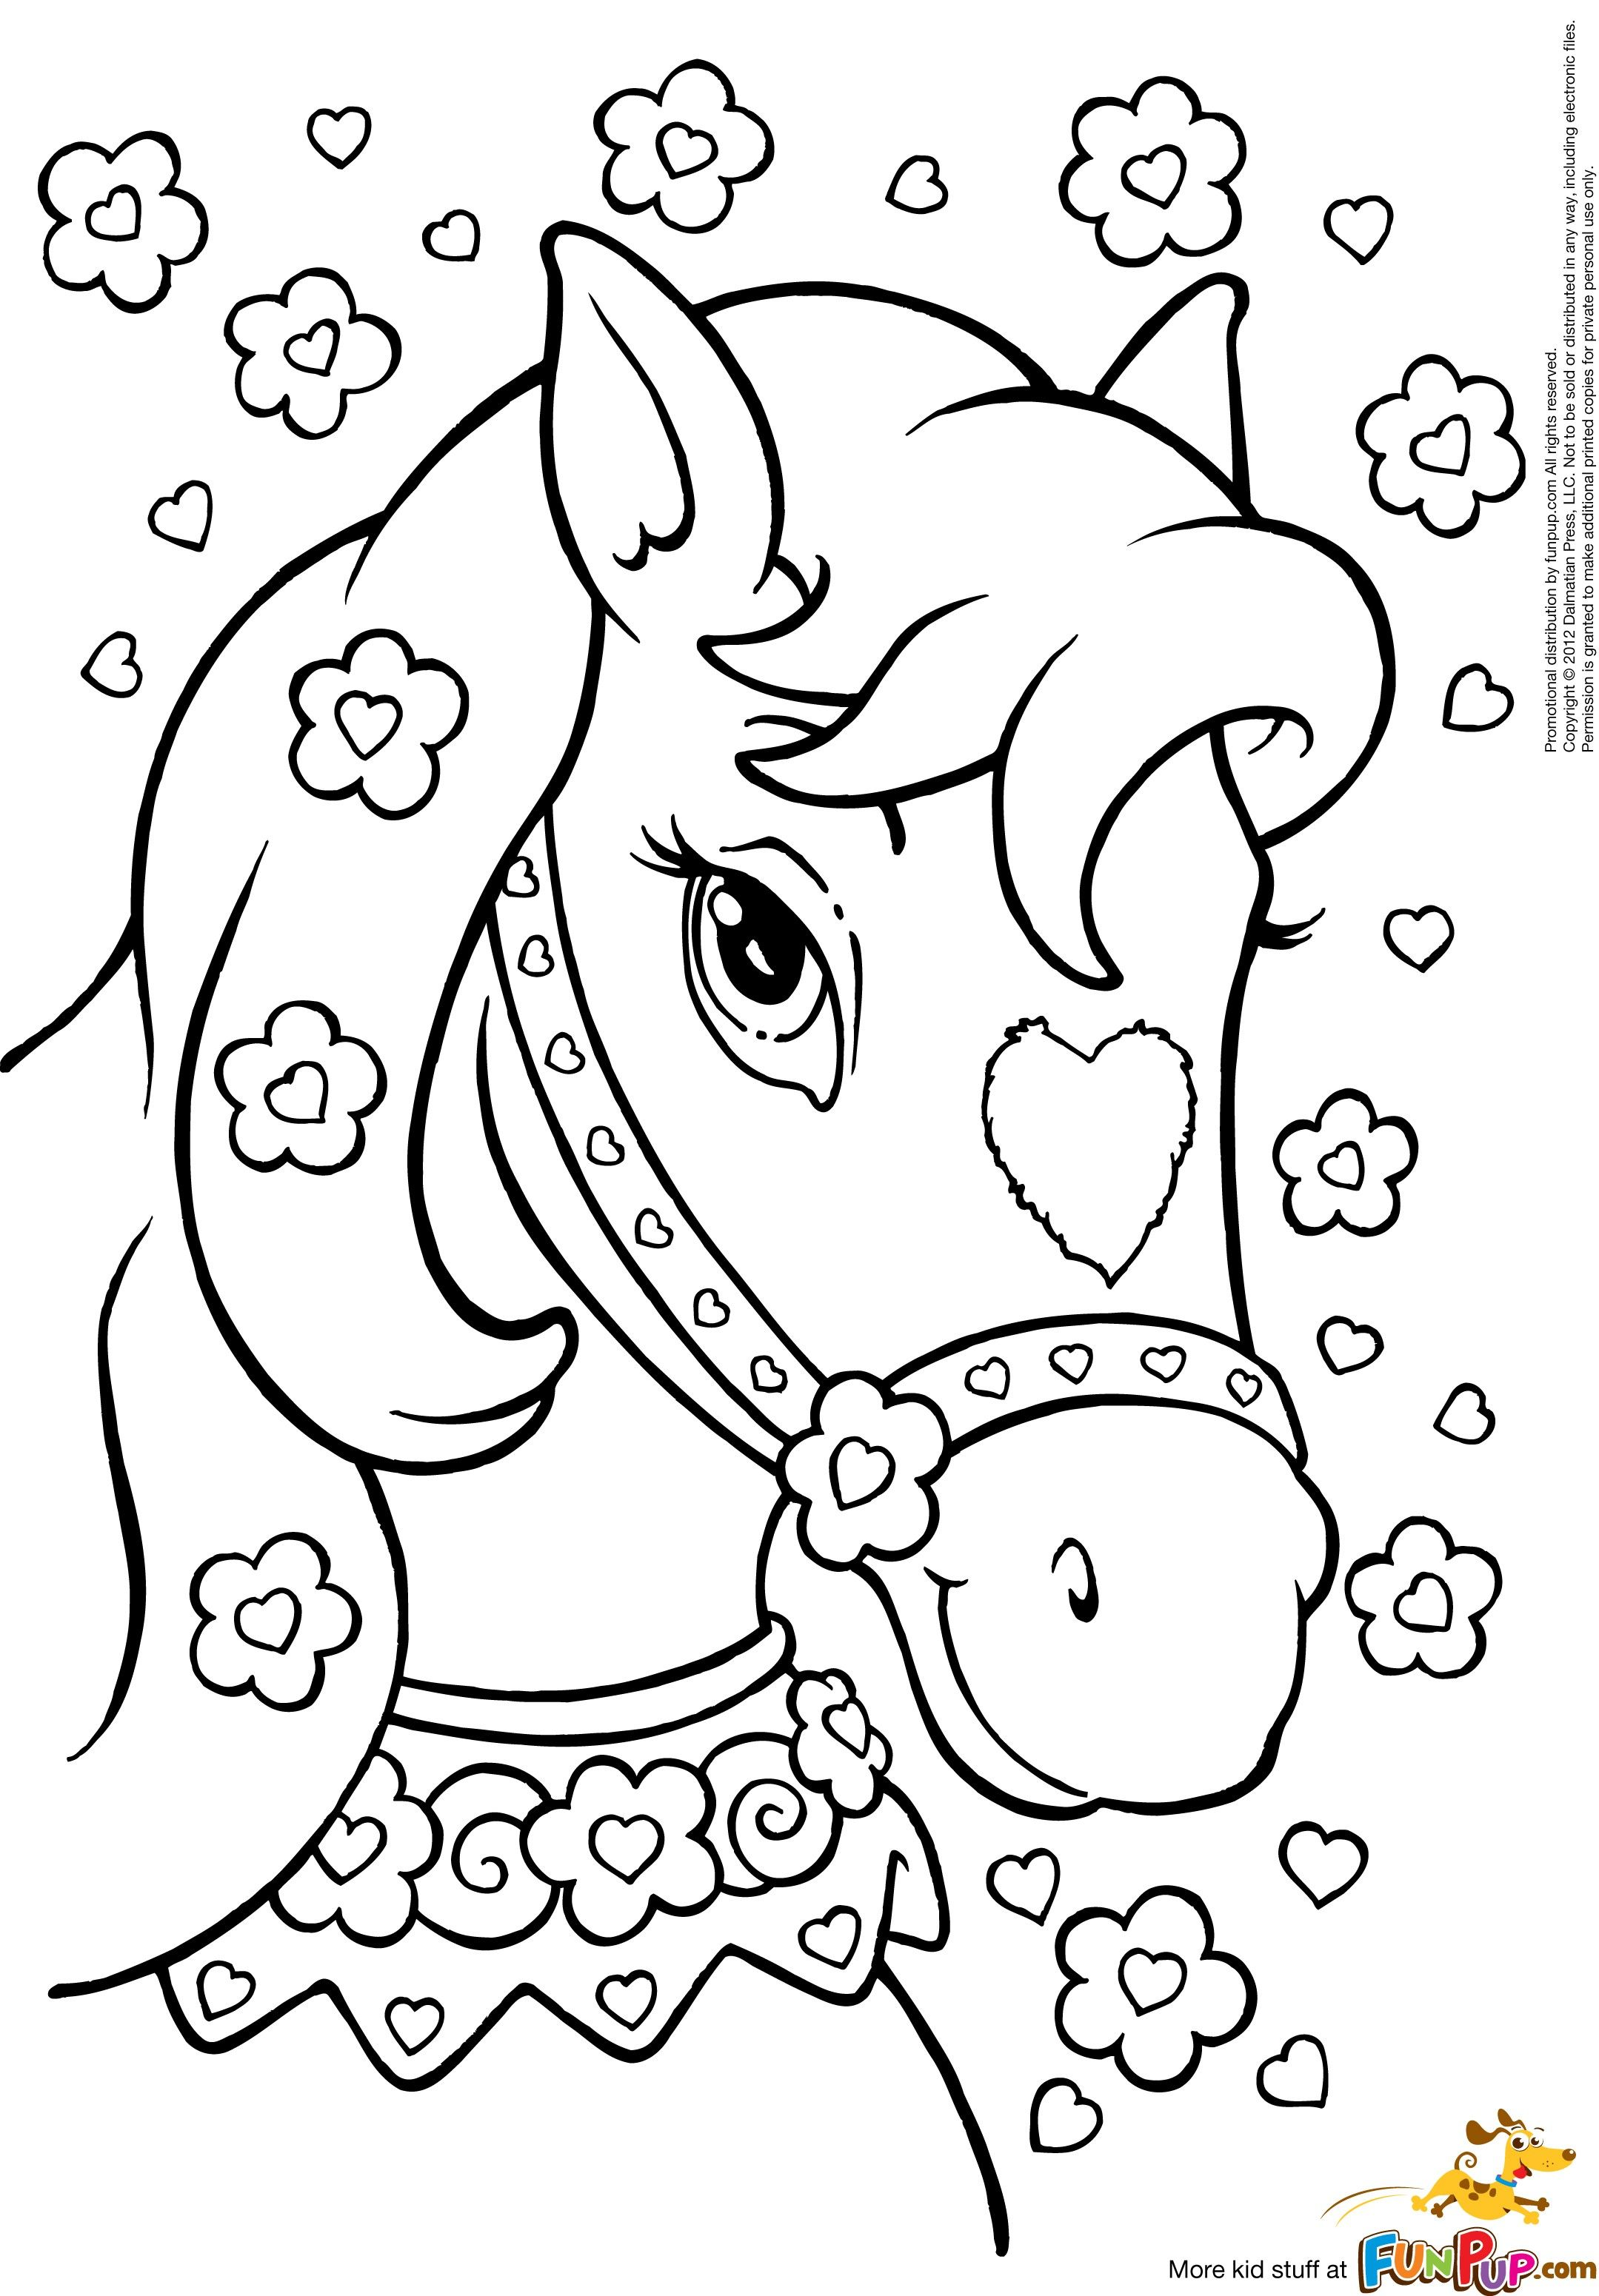 printable princess coloring pages Coloring Pages for